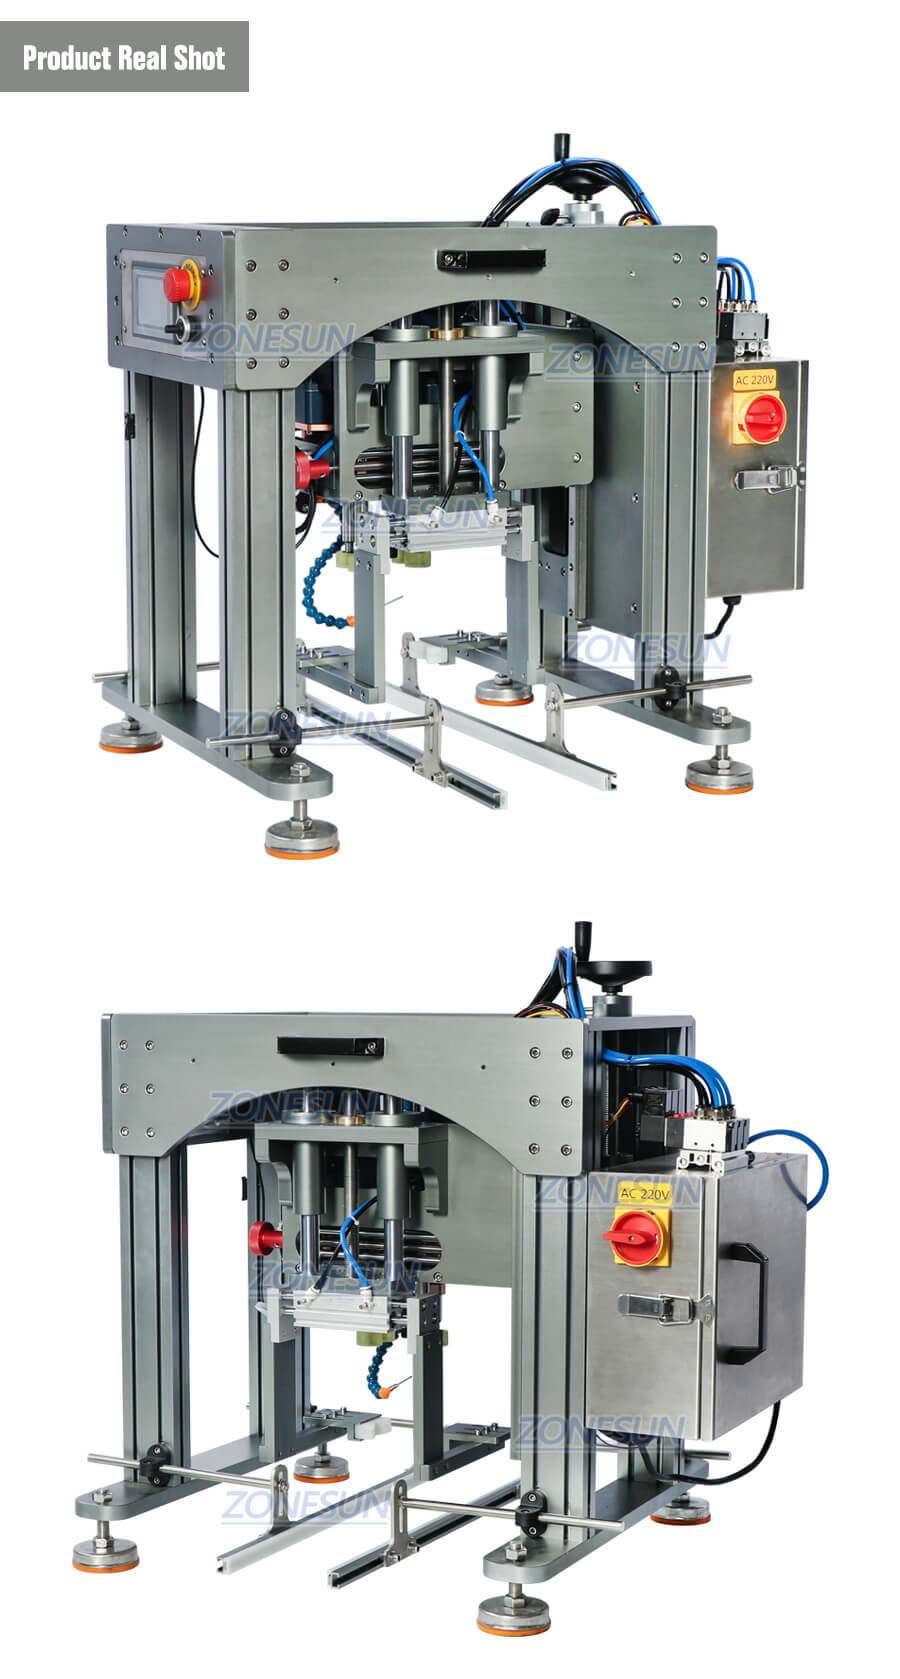 Real Shot of Semi-automatic Capping Machine for Conveyor Belt